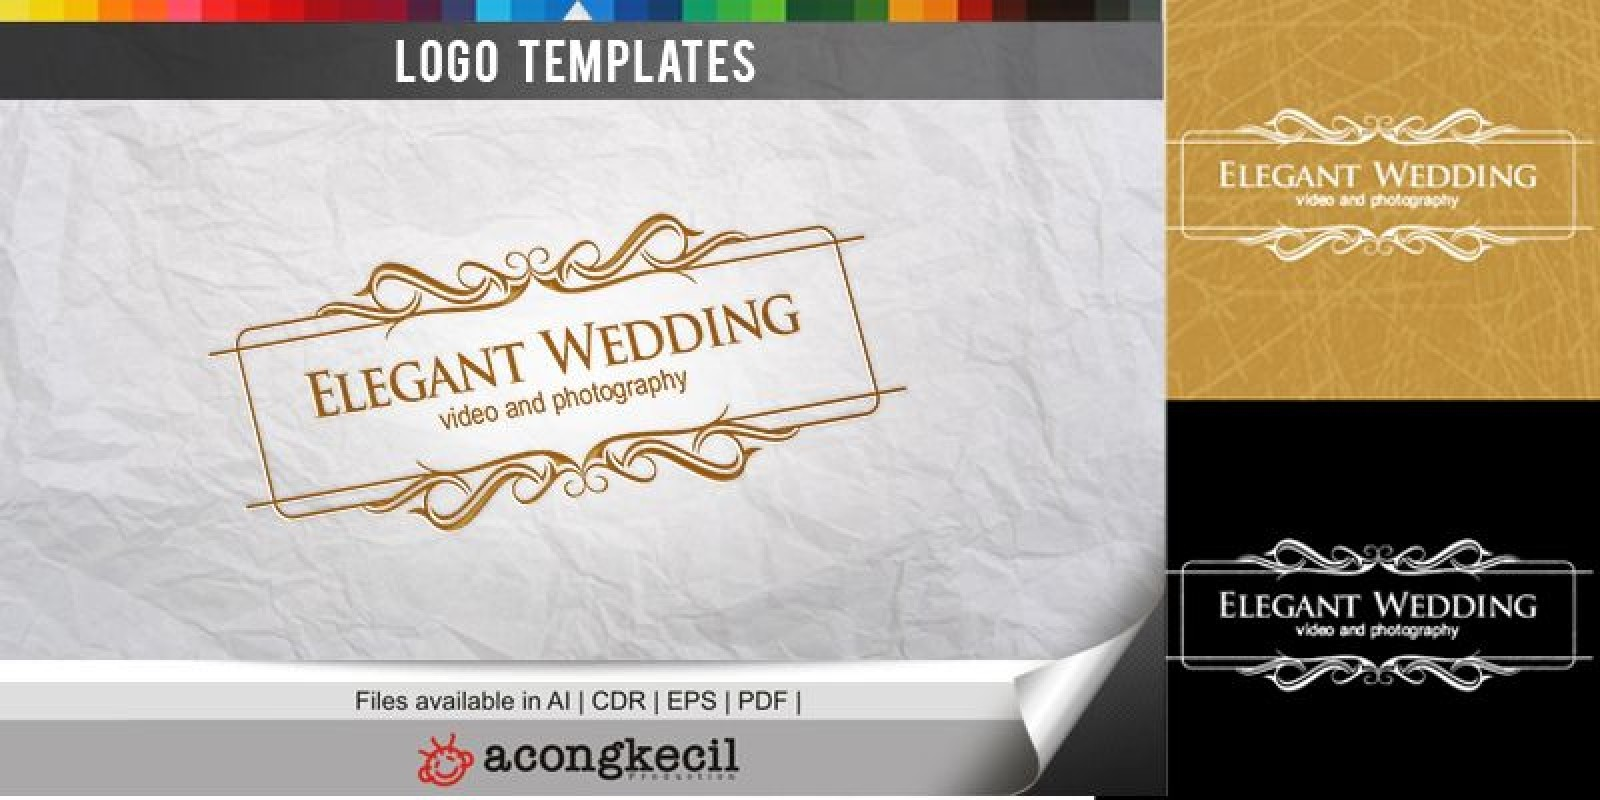 Elegant Wedding - Logo Template